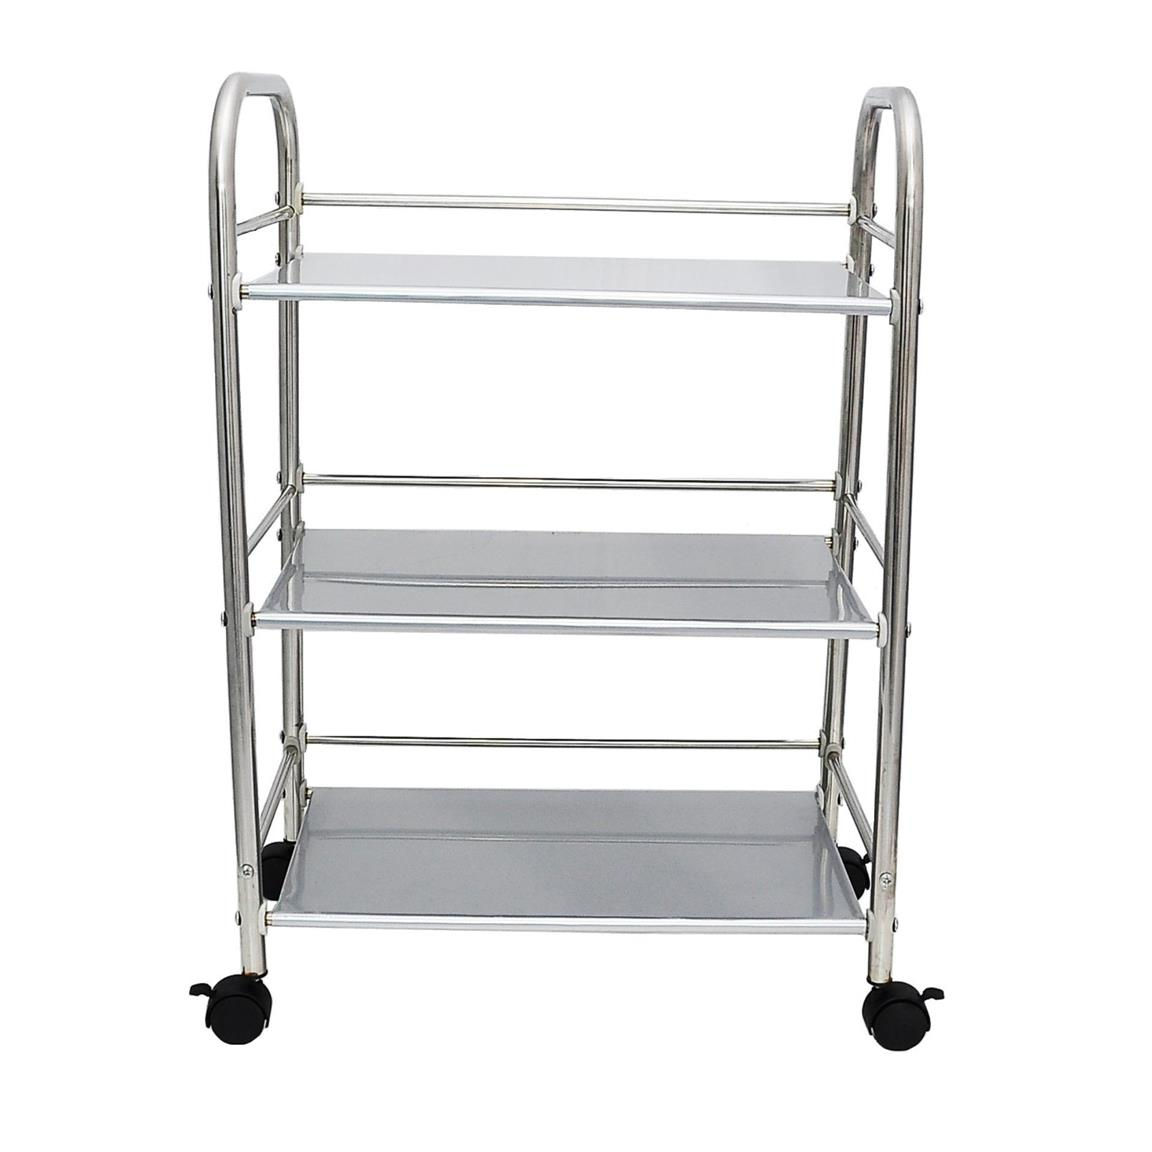 Stainless Steel 3 Tier Serving Trol (end 6/19/2019 12:16 PM)